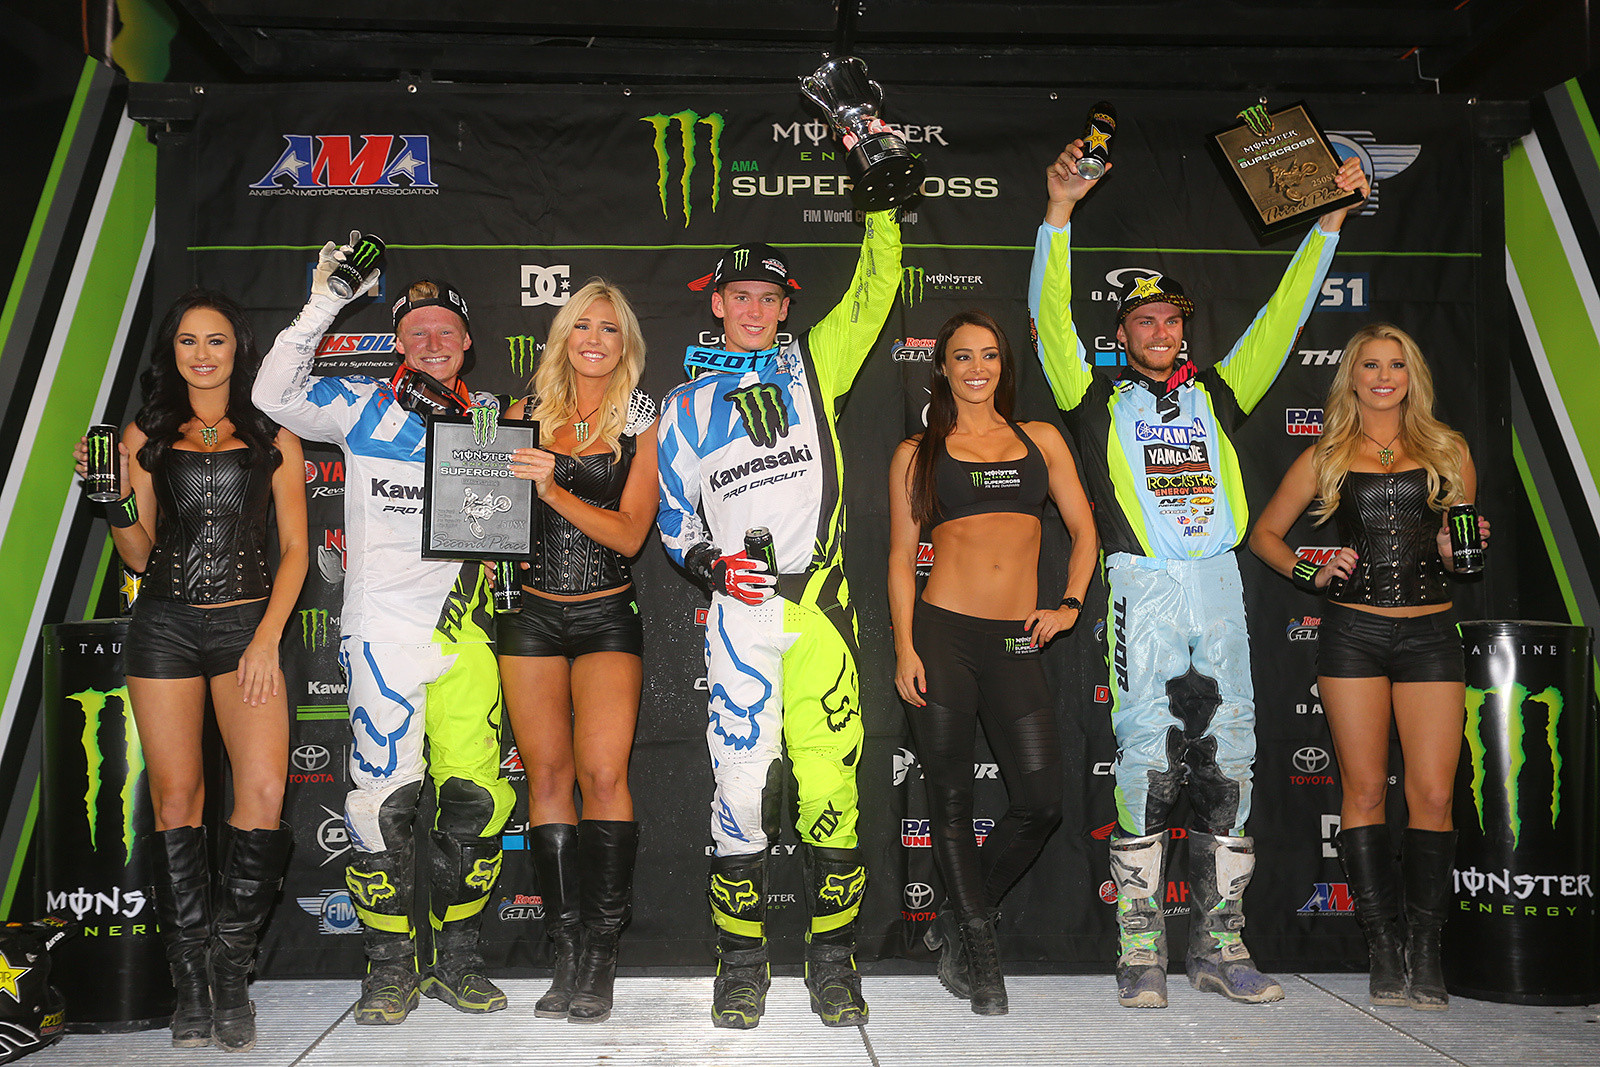 Here's your top three 250s on the night, with Adam Cianciarulo, Justin Hill, and Aaron Plessinger.